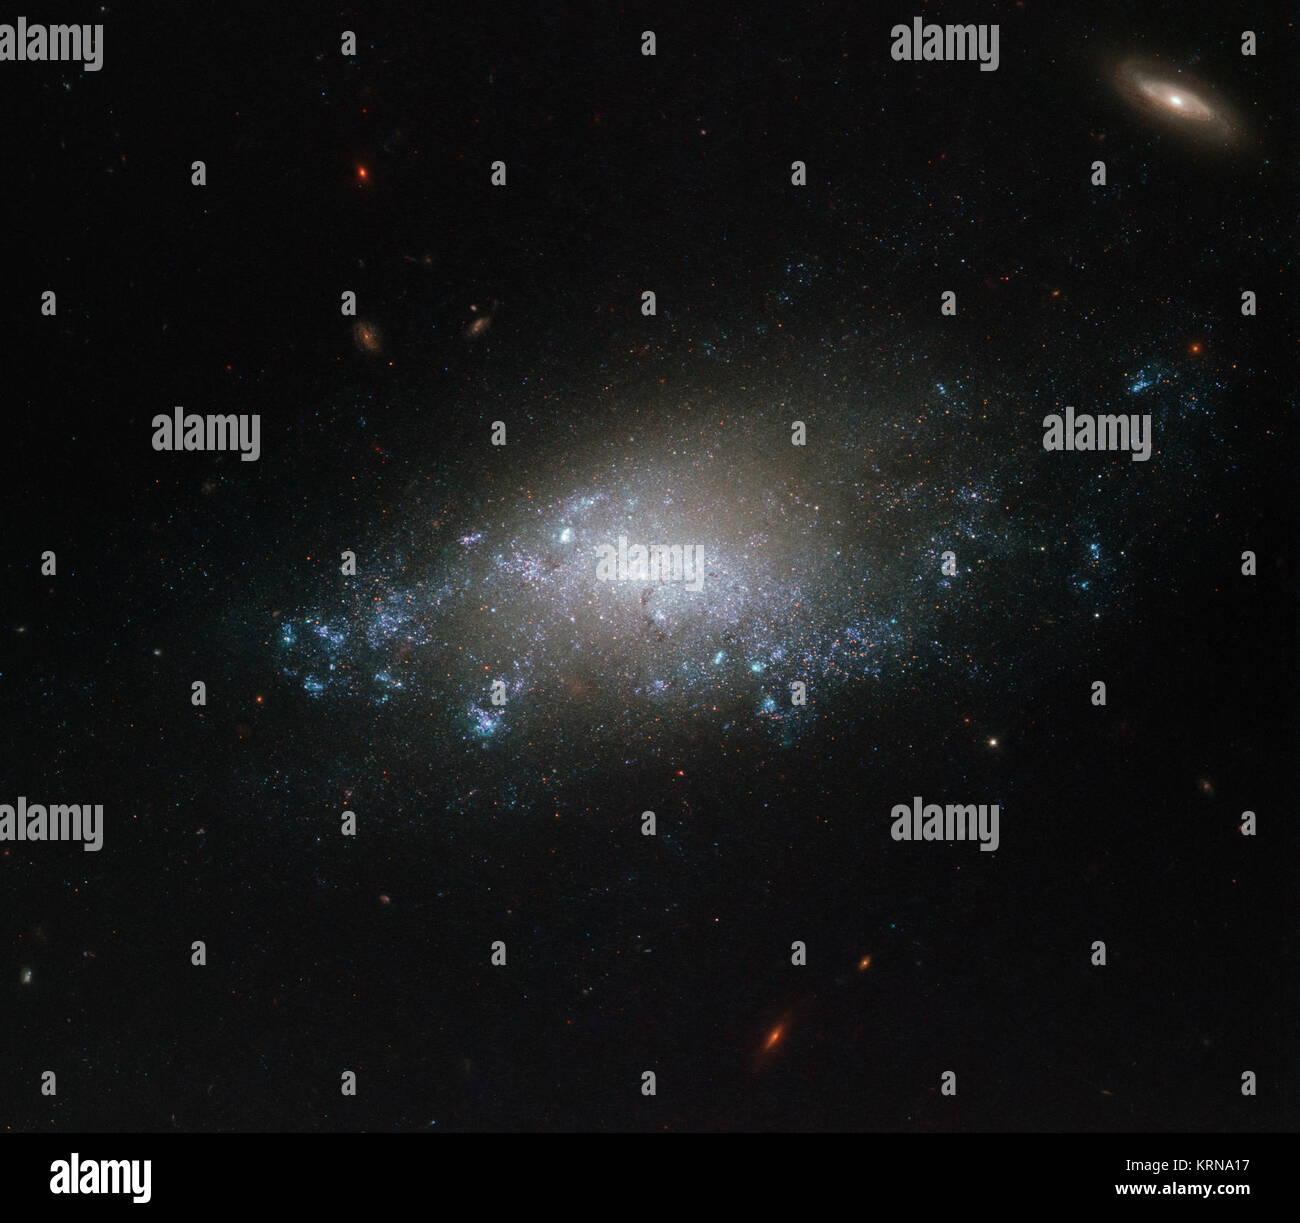 This image of the spiral galaxy NGC 3274 comes courtesy of the NASA/ESA Hubble Space Telescope's Wide Field Camera - Stock Image